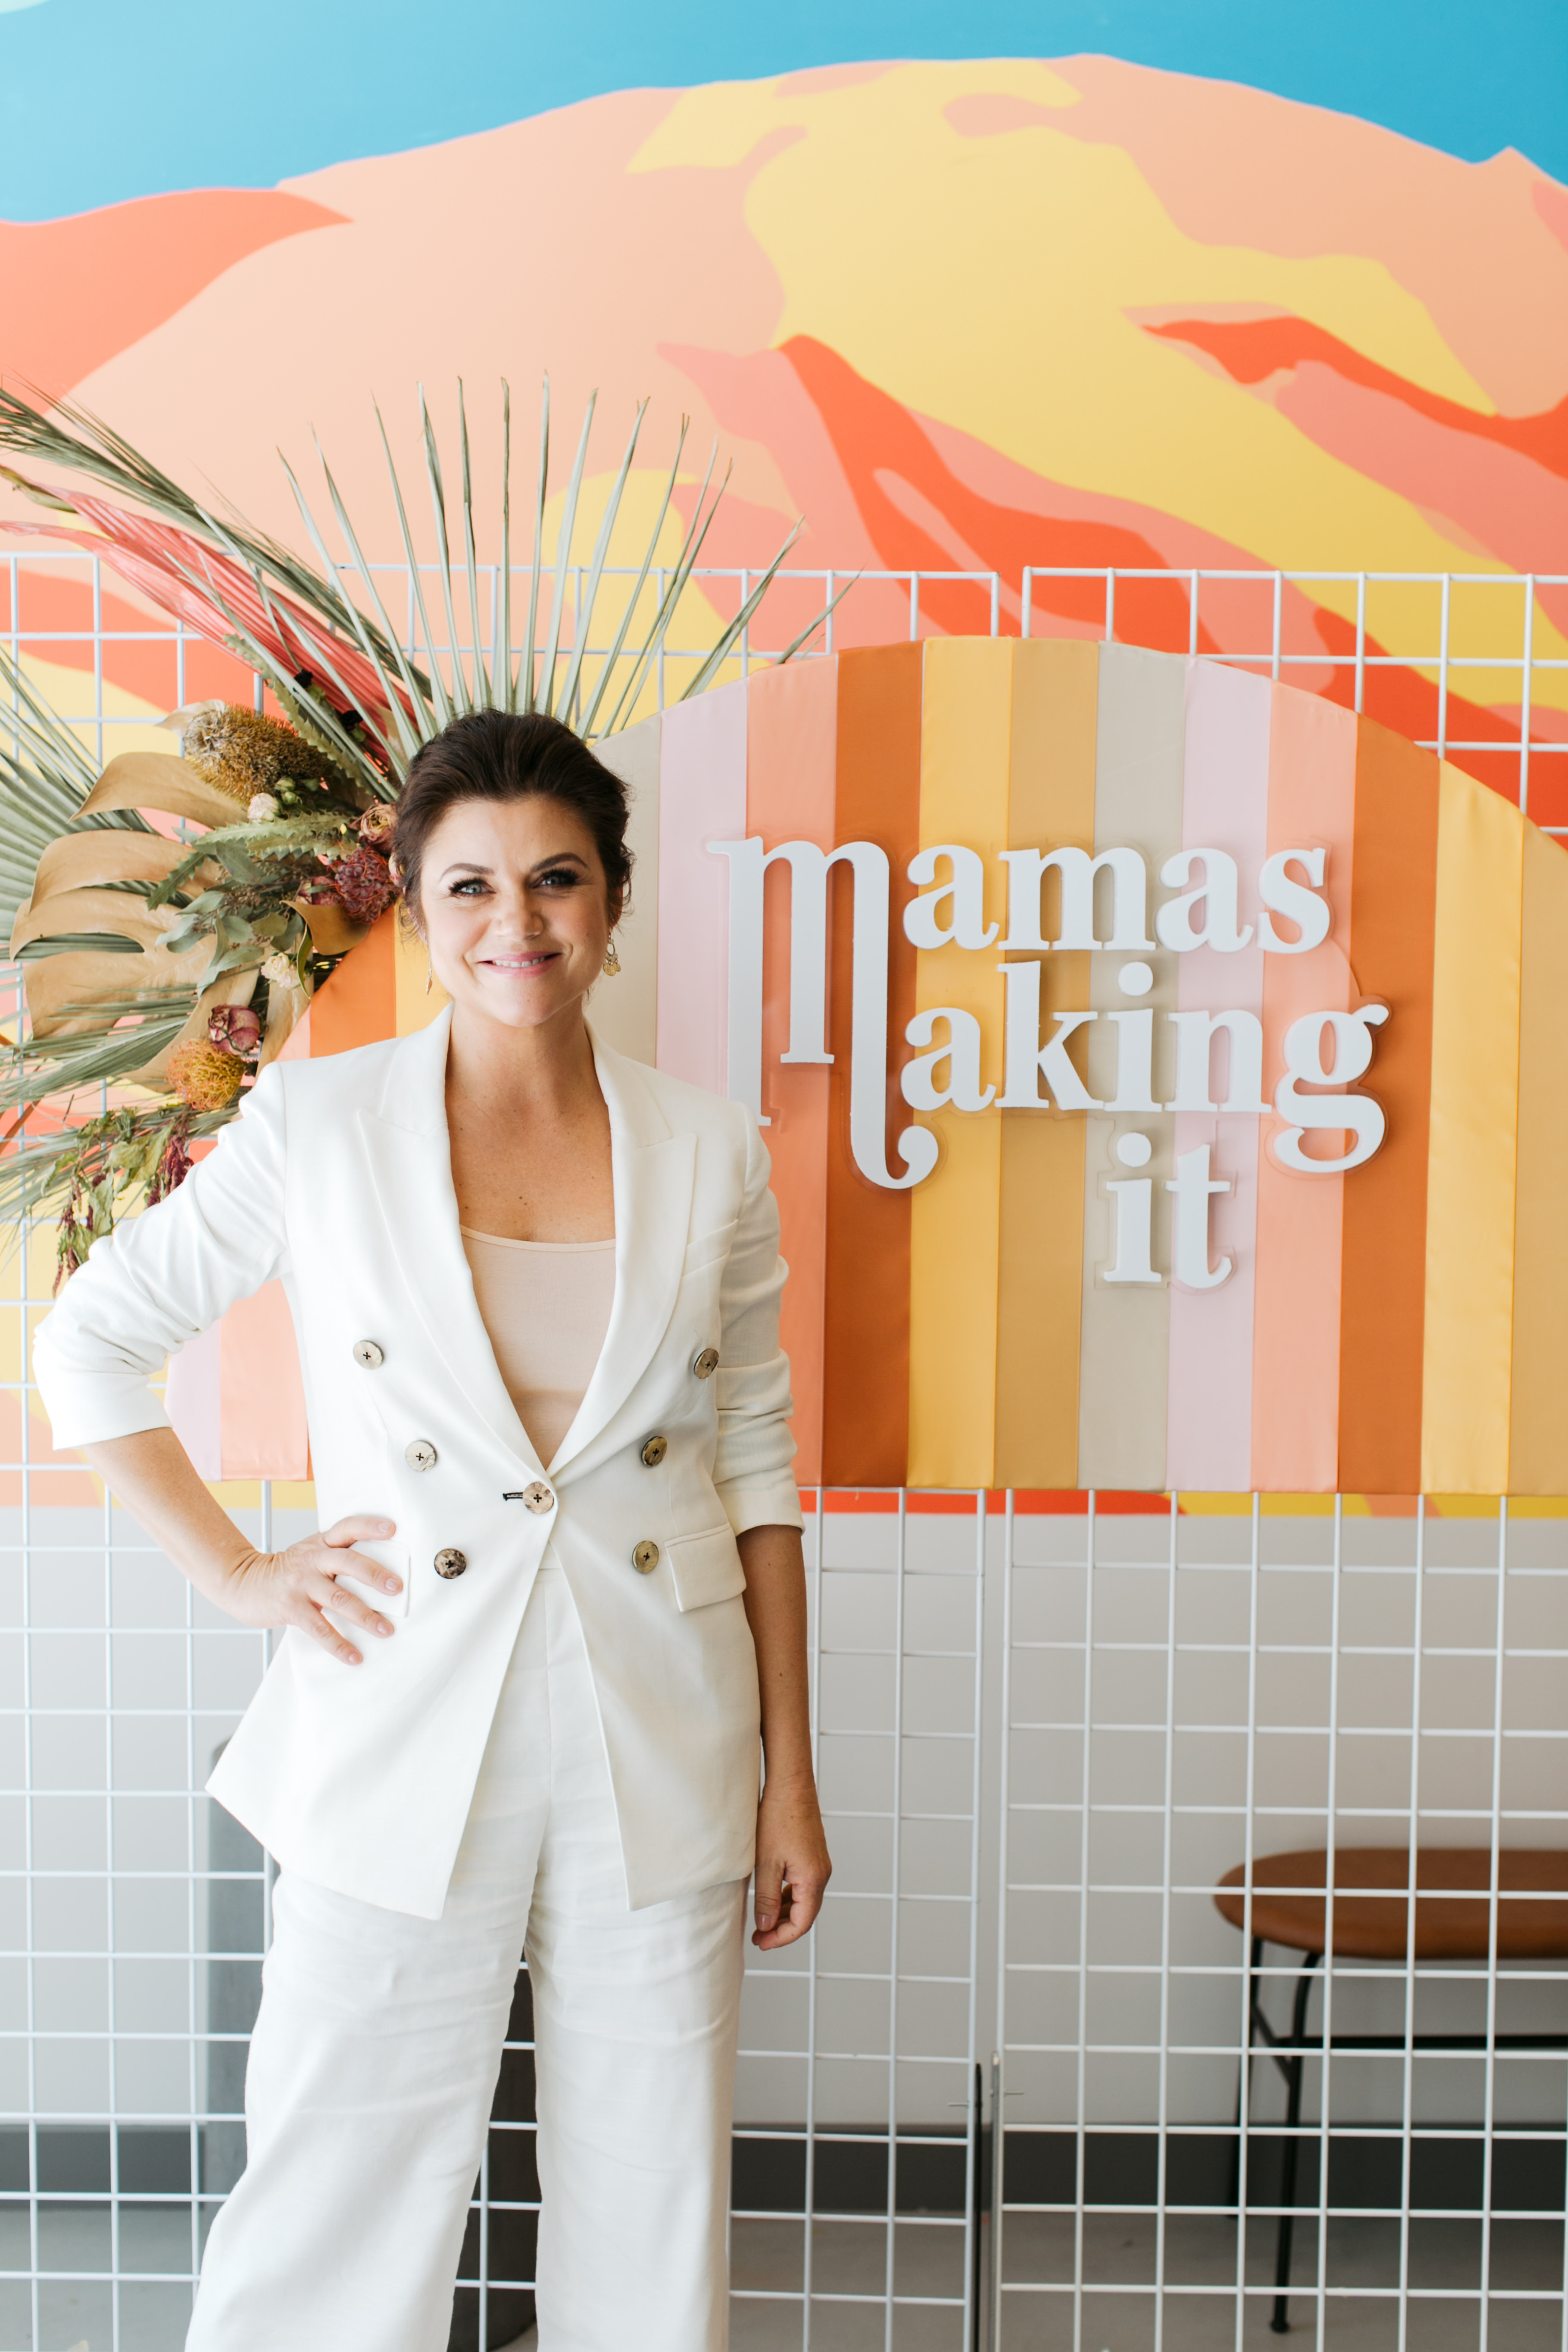 Tiffani Thiessen Explains Why She's Working Harder than Ever